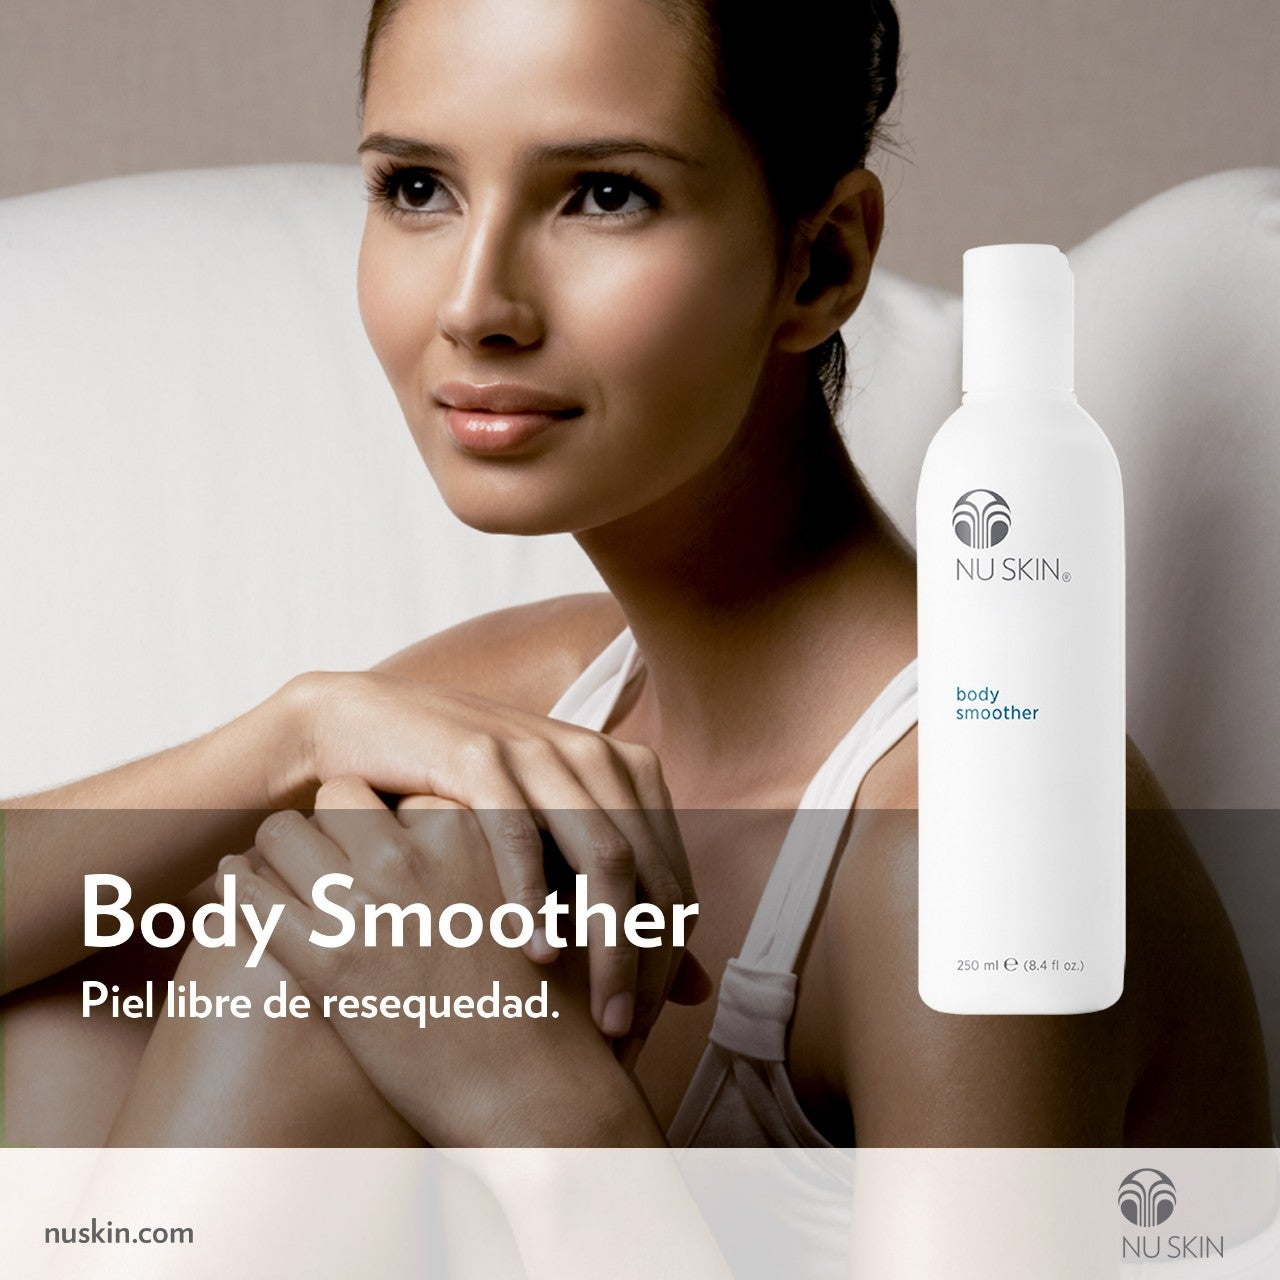 Body Smoother